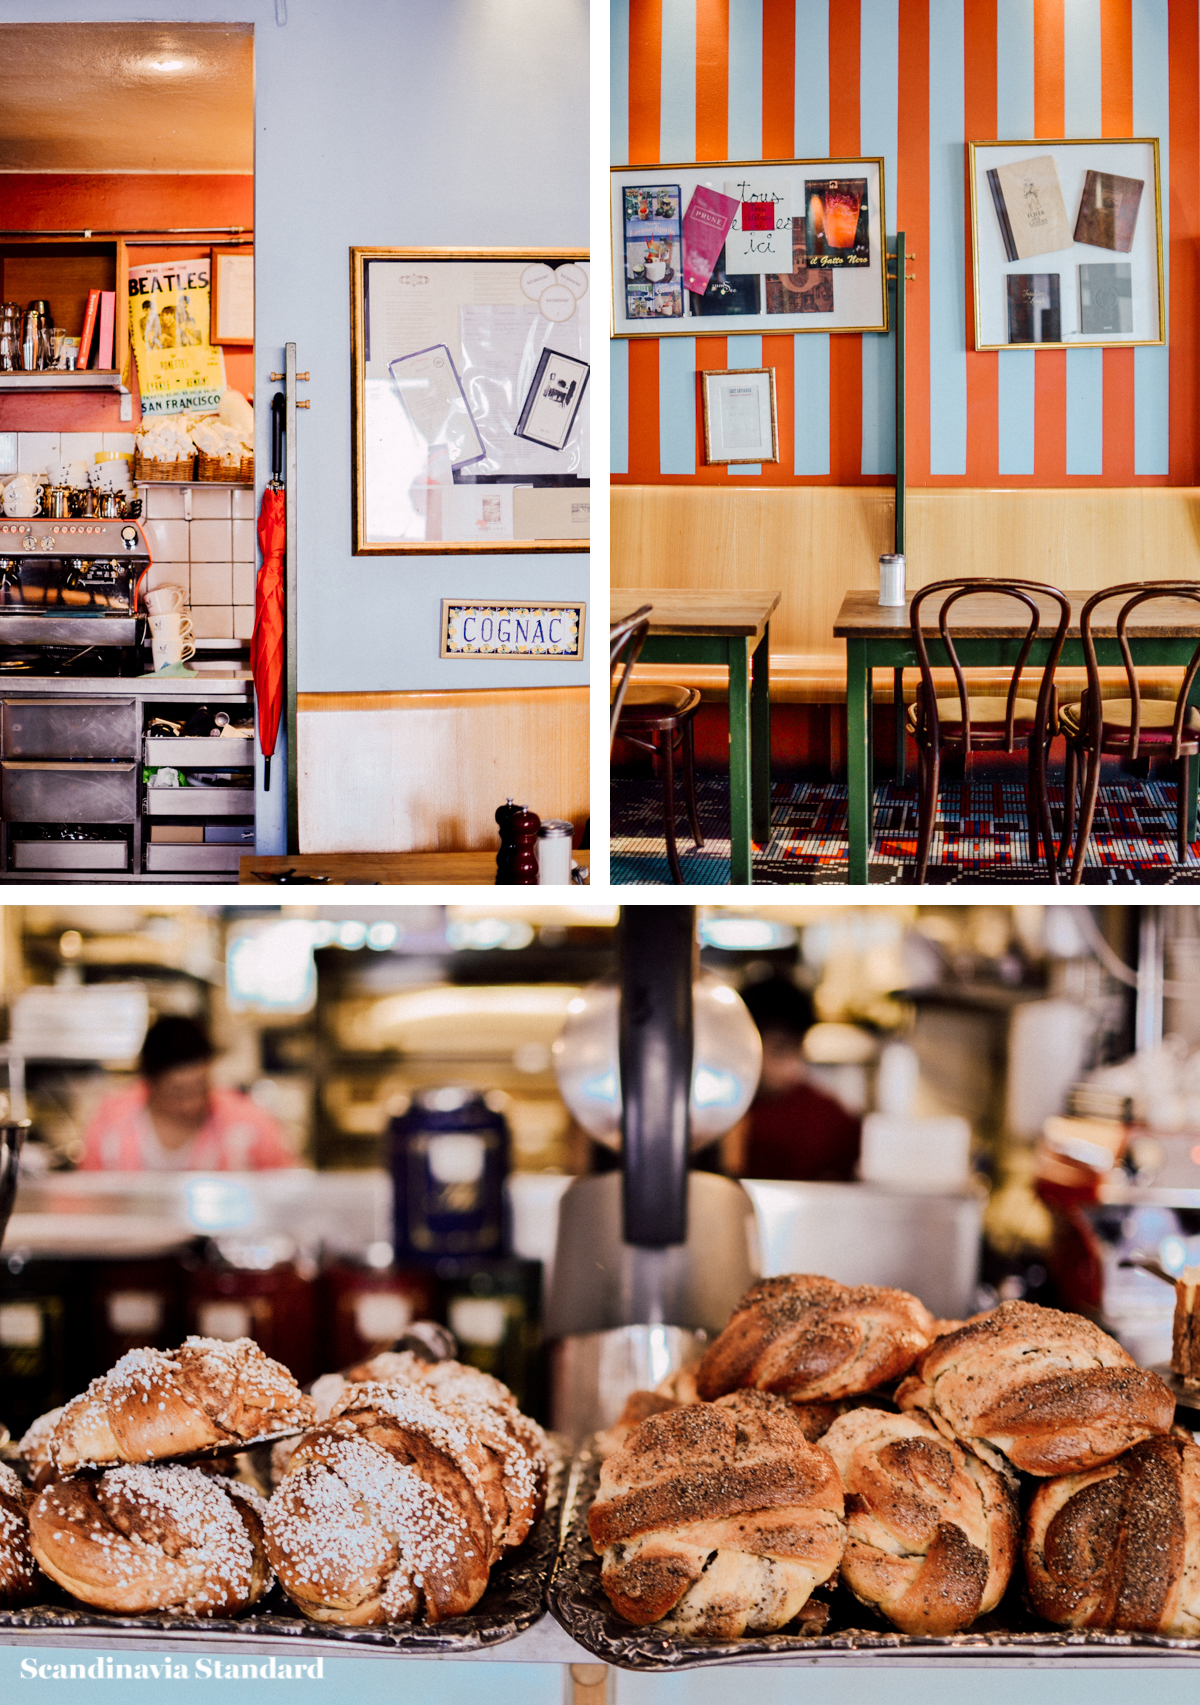 Knausgard Spots to Eat in Stockholm - Saturnus I Scandinavia Standard